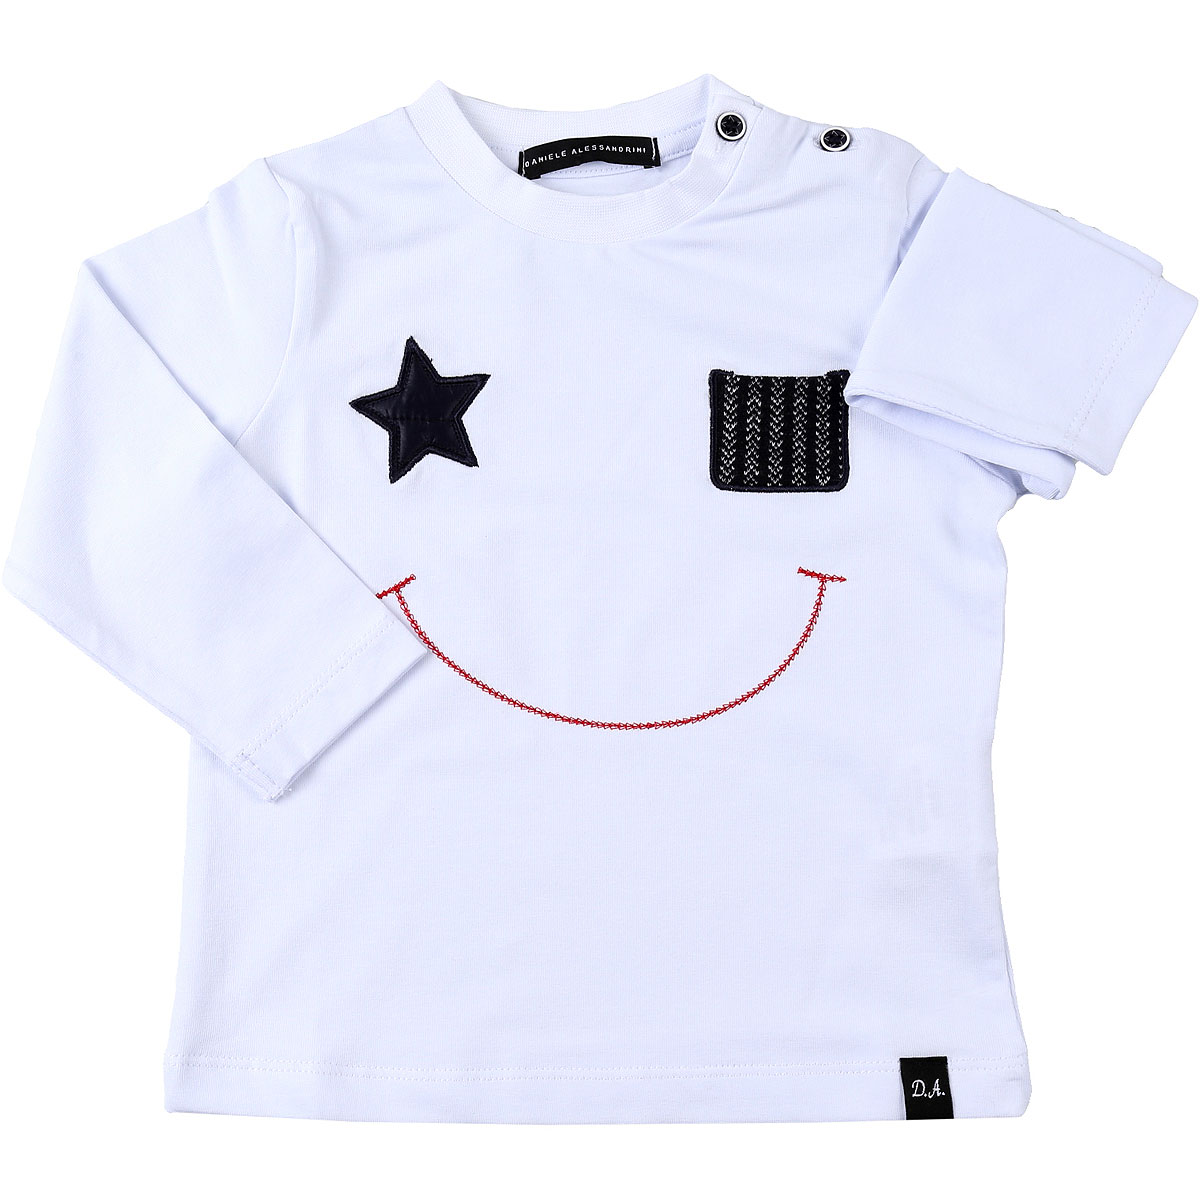 Daniele Alessandrini Baby T-Shirt for Boys On Sale, White, Cotton, 2019, 3Y 6M